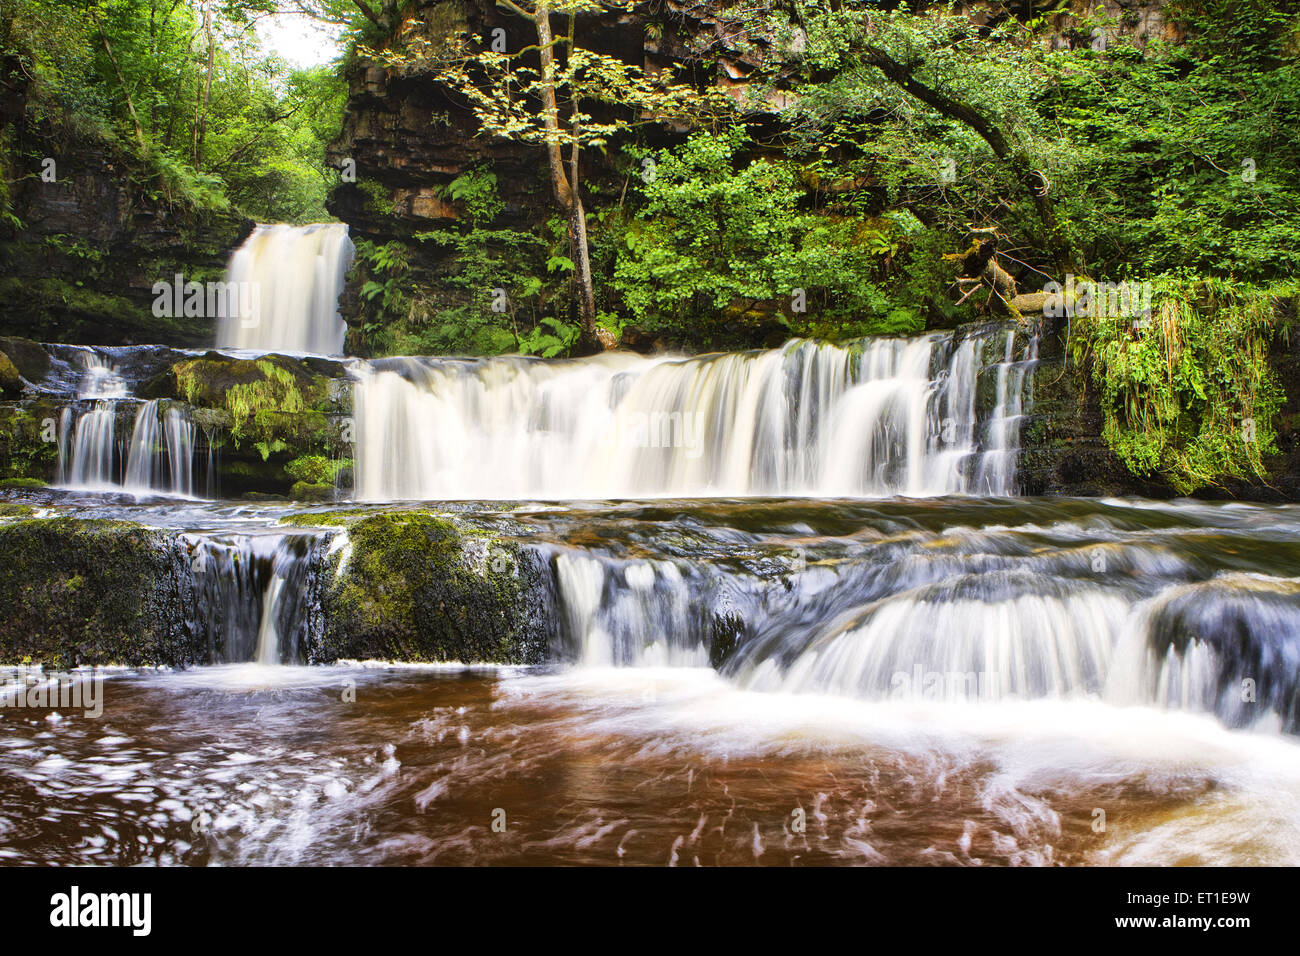 Brecon Beacons National Park waterfalls in Wales at England - Stock Image